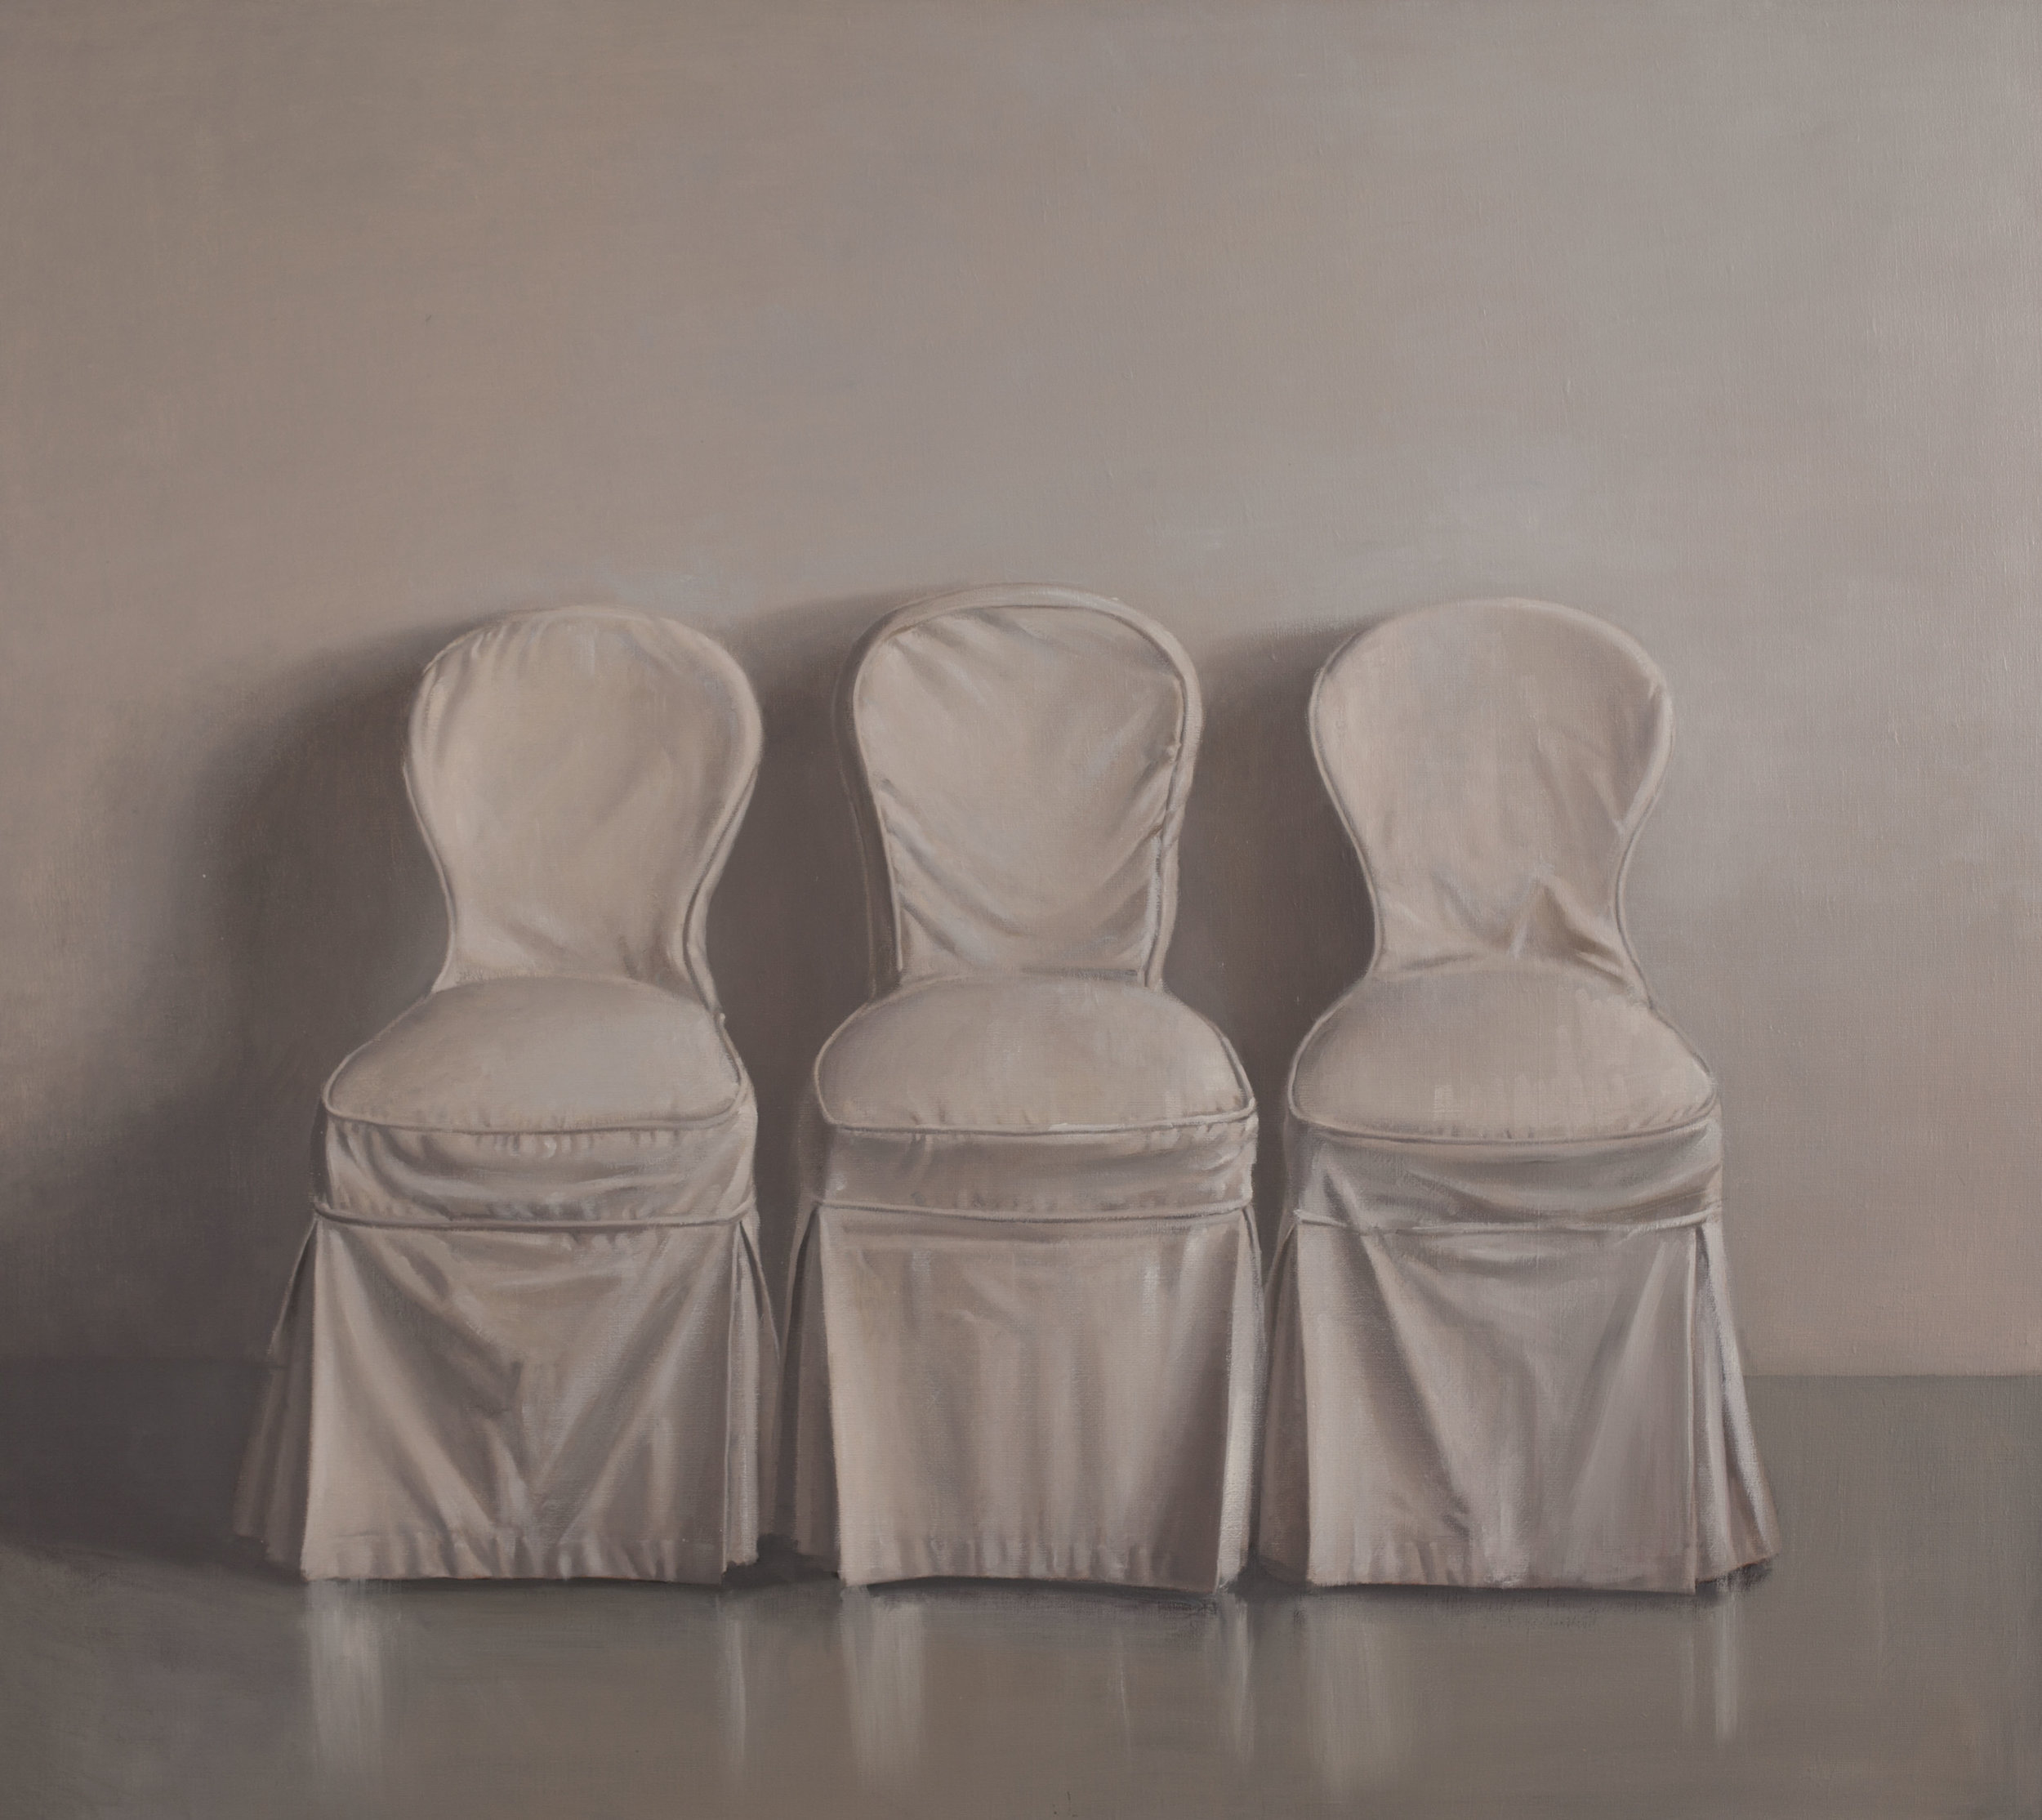 Raymond Han  (1931-2017)  Three Chairs , 1982 Oil on linen 48 x 54 inches 121.9 x 137.2 cm